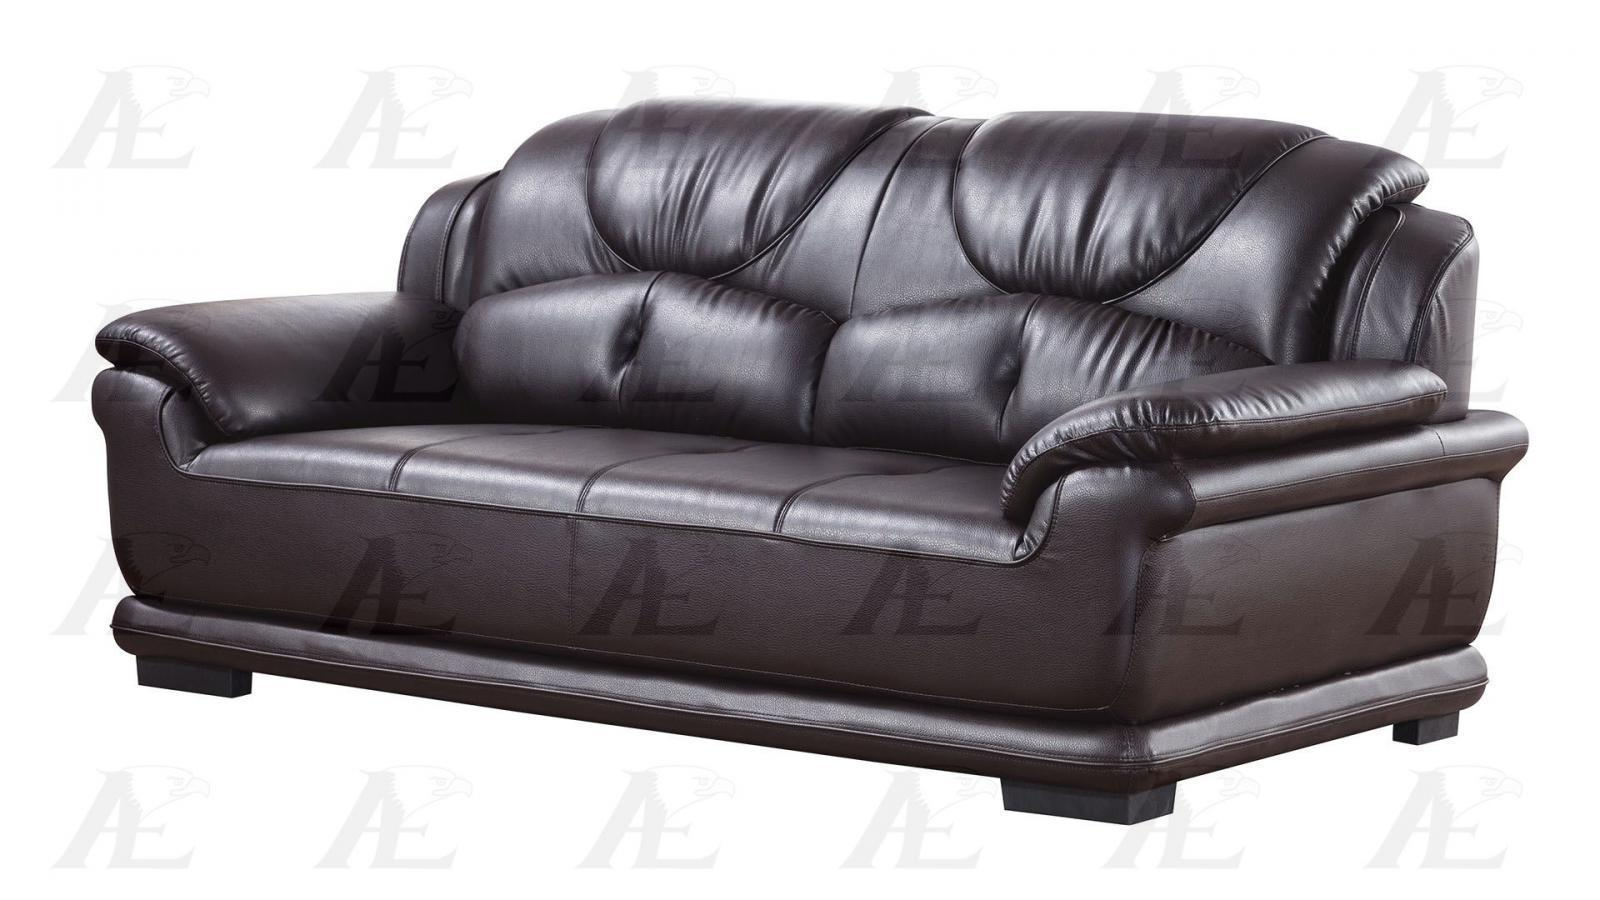 American Eagle Ae601 Dc Dark Chocolate Faux Leather Sofa Loveseat Chair Set 3pcs